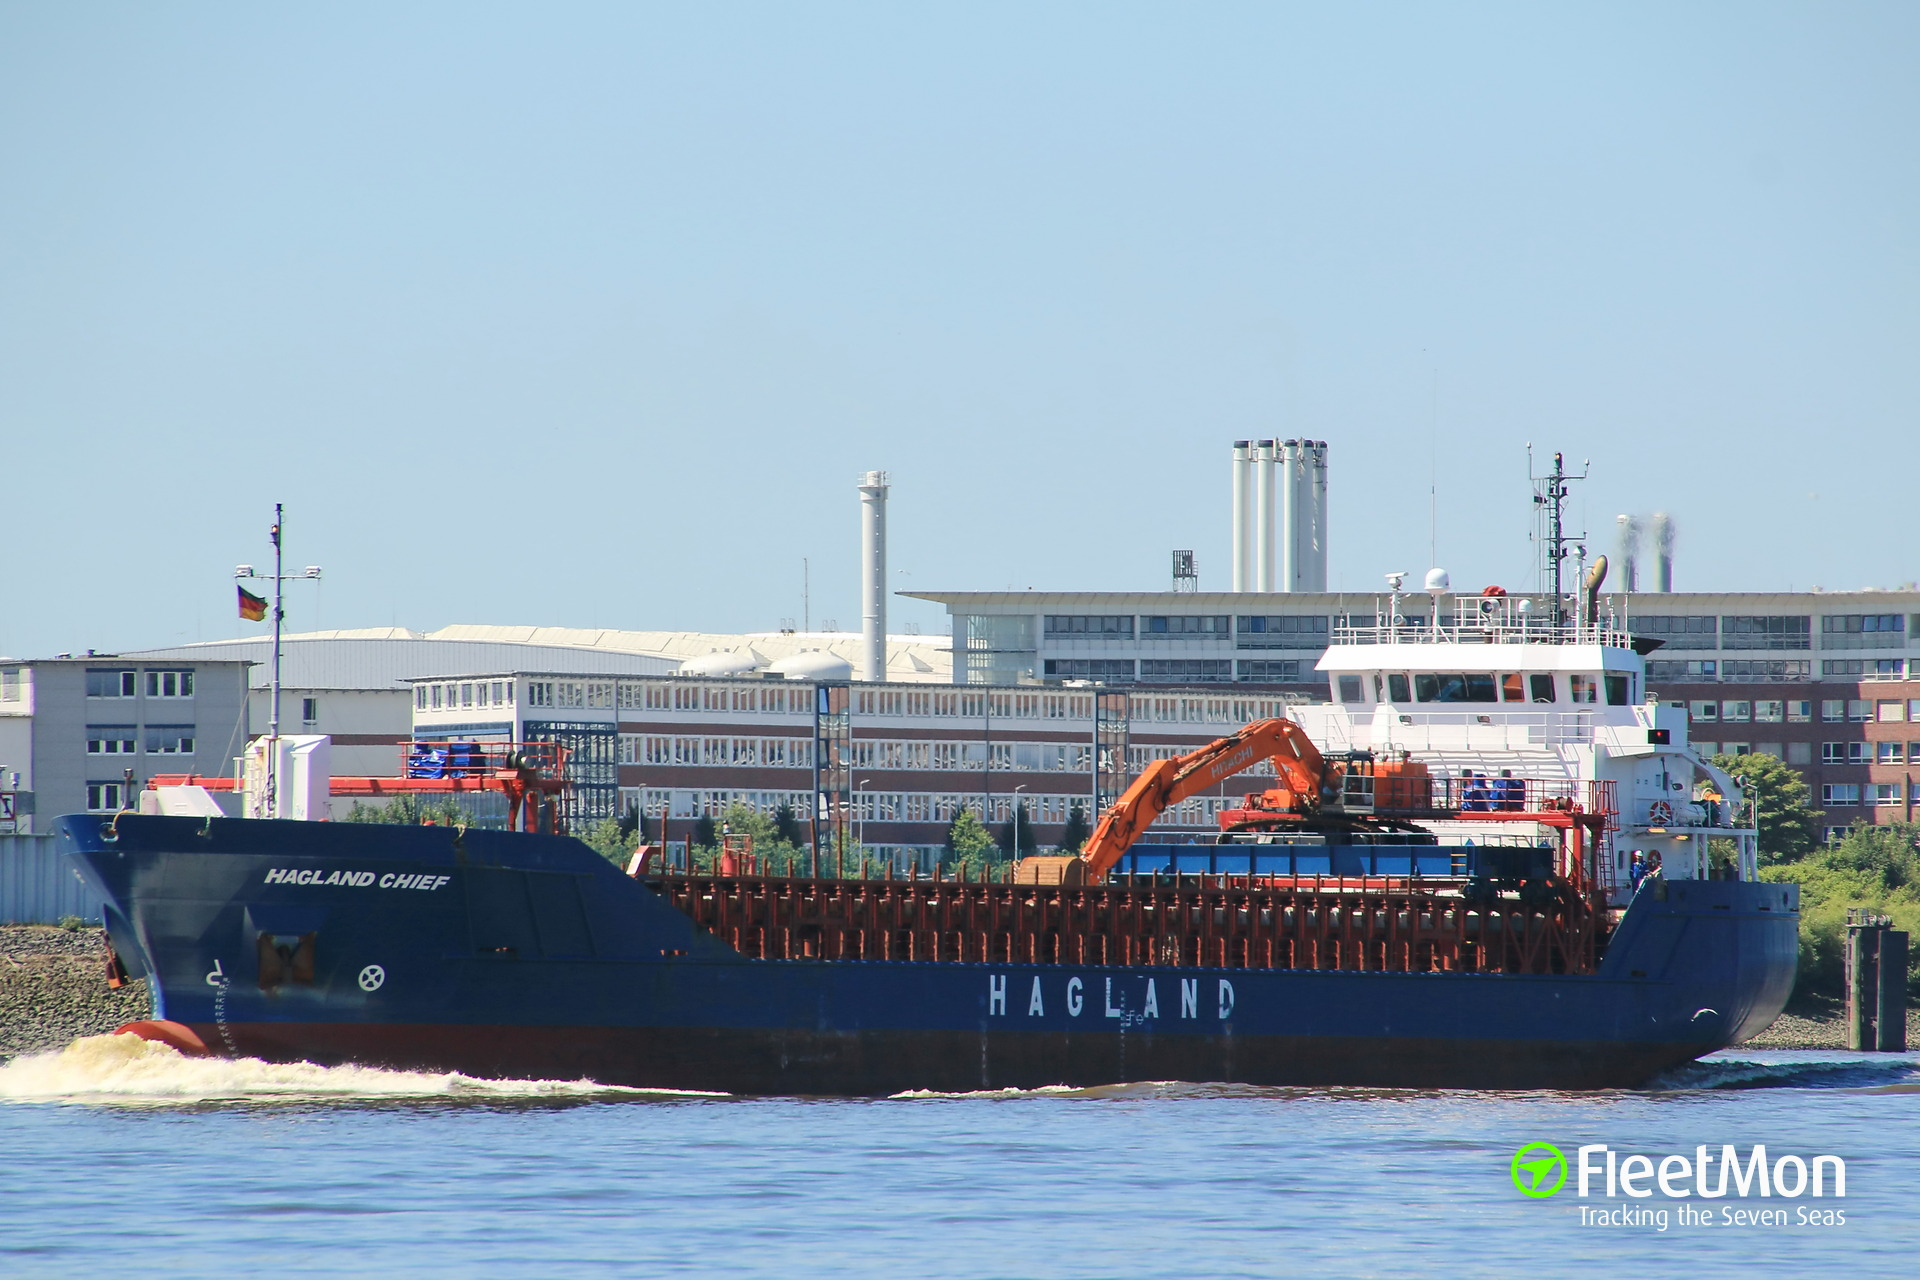 Freighter Hagland Chief aground and refloated, Norway